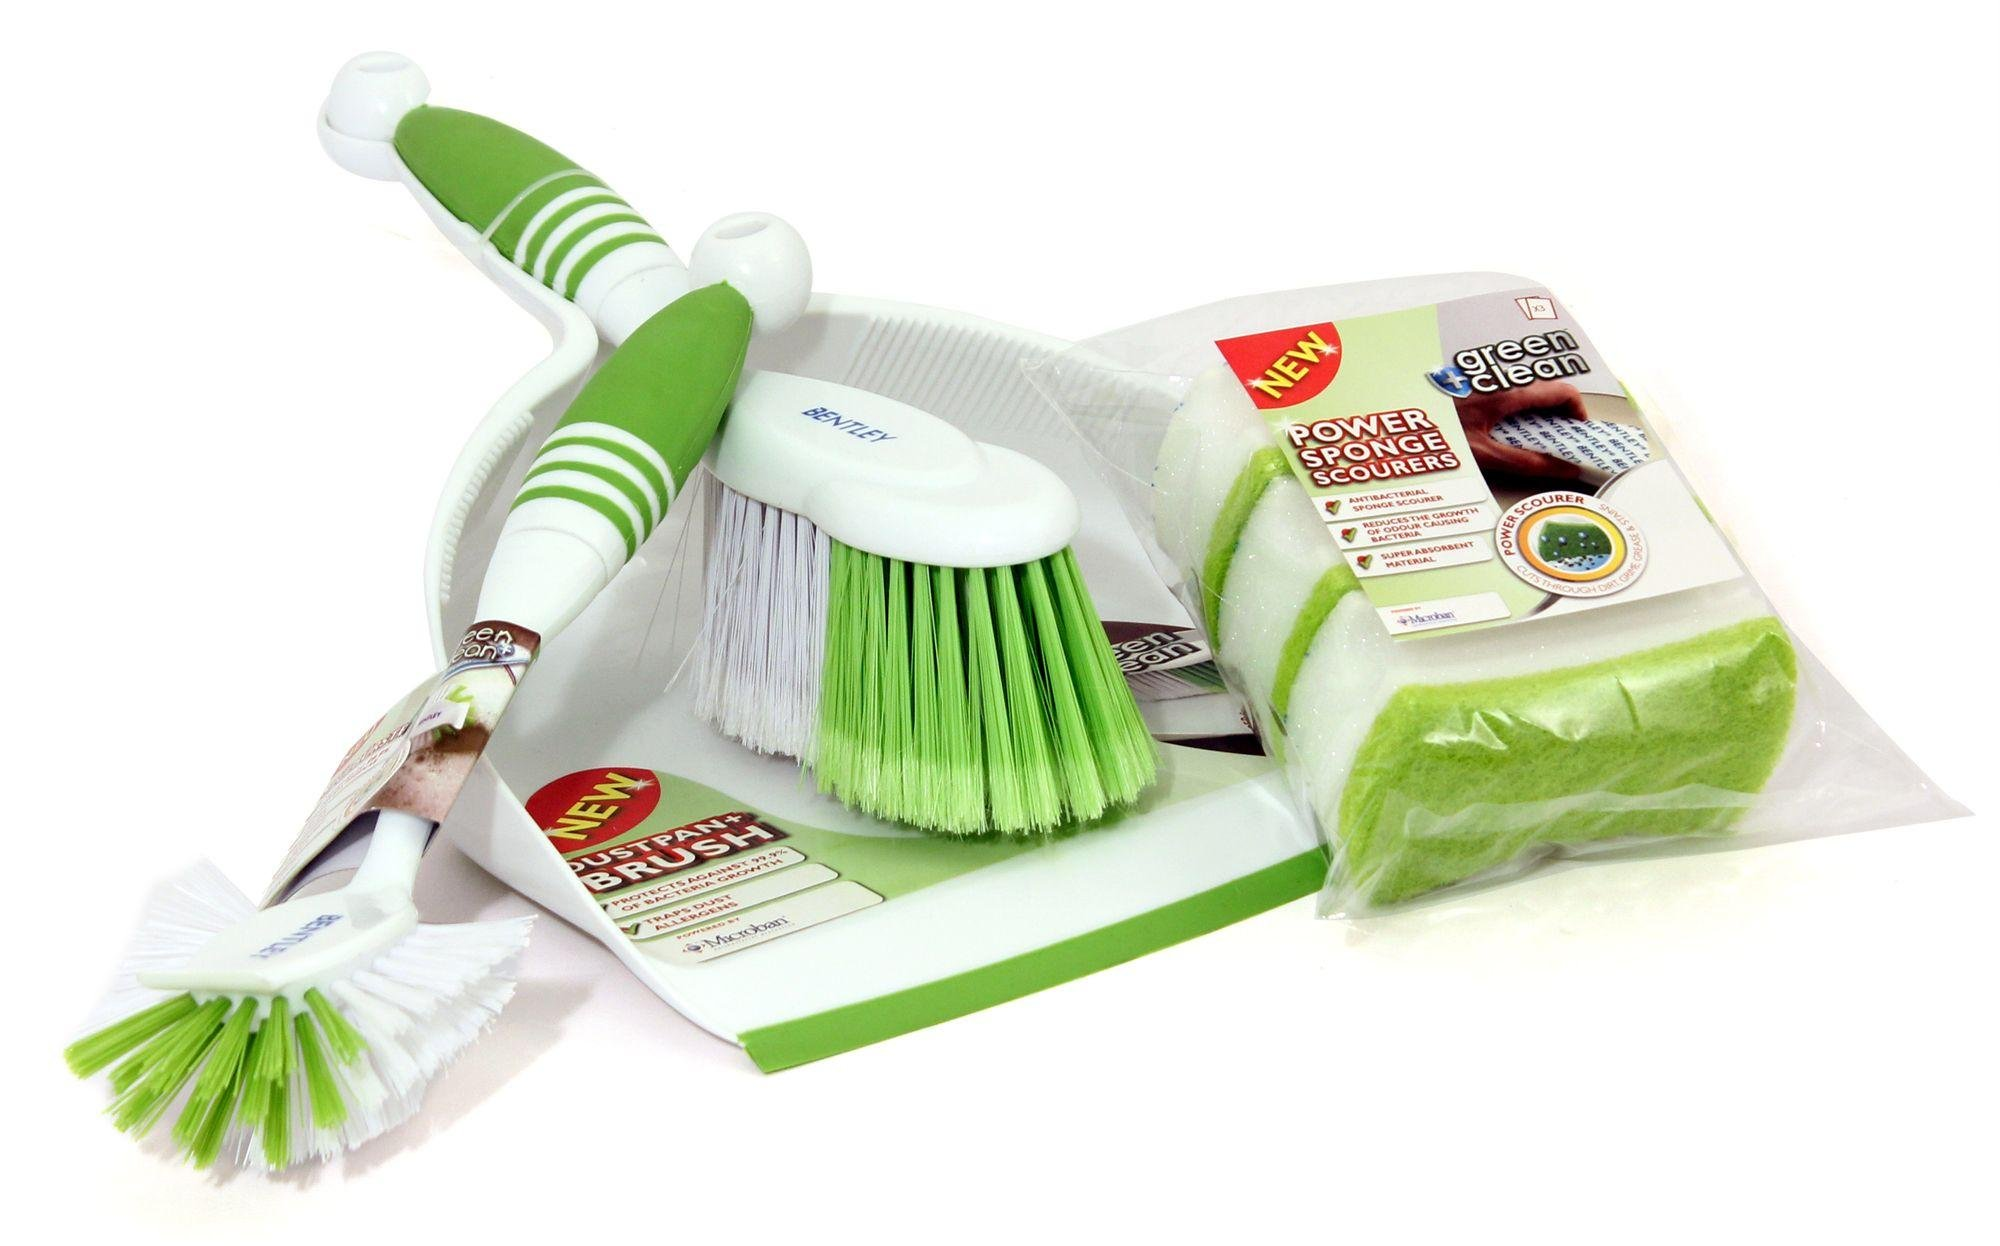 Image of Bentley Green and Clean Kitchen Cleaning Set.